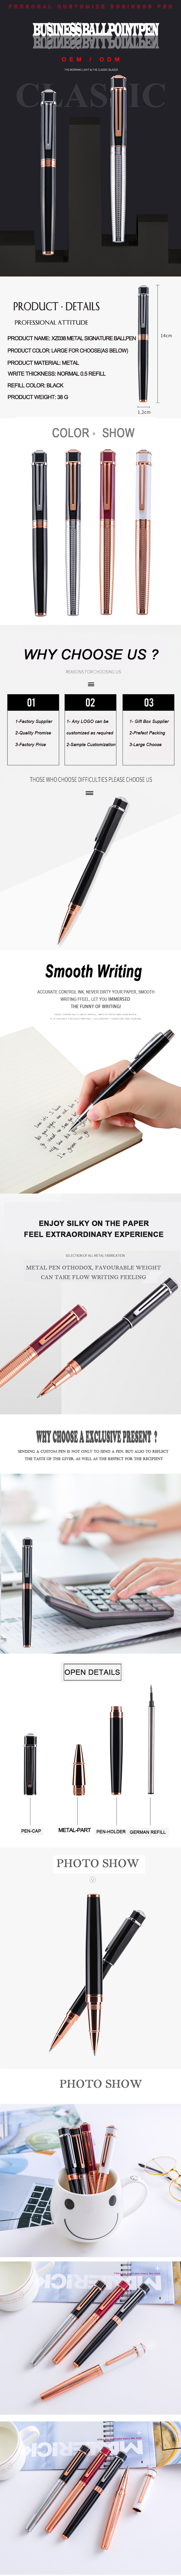 2020 High Quality Manufacturers Roller Pen Direct Sales of Multi - color Pen Commercial Metal Signature Pen